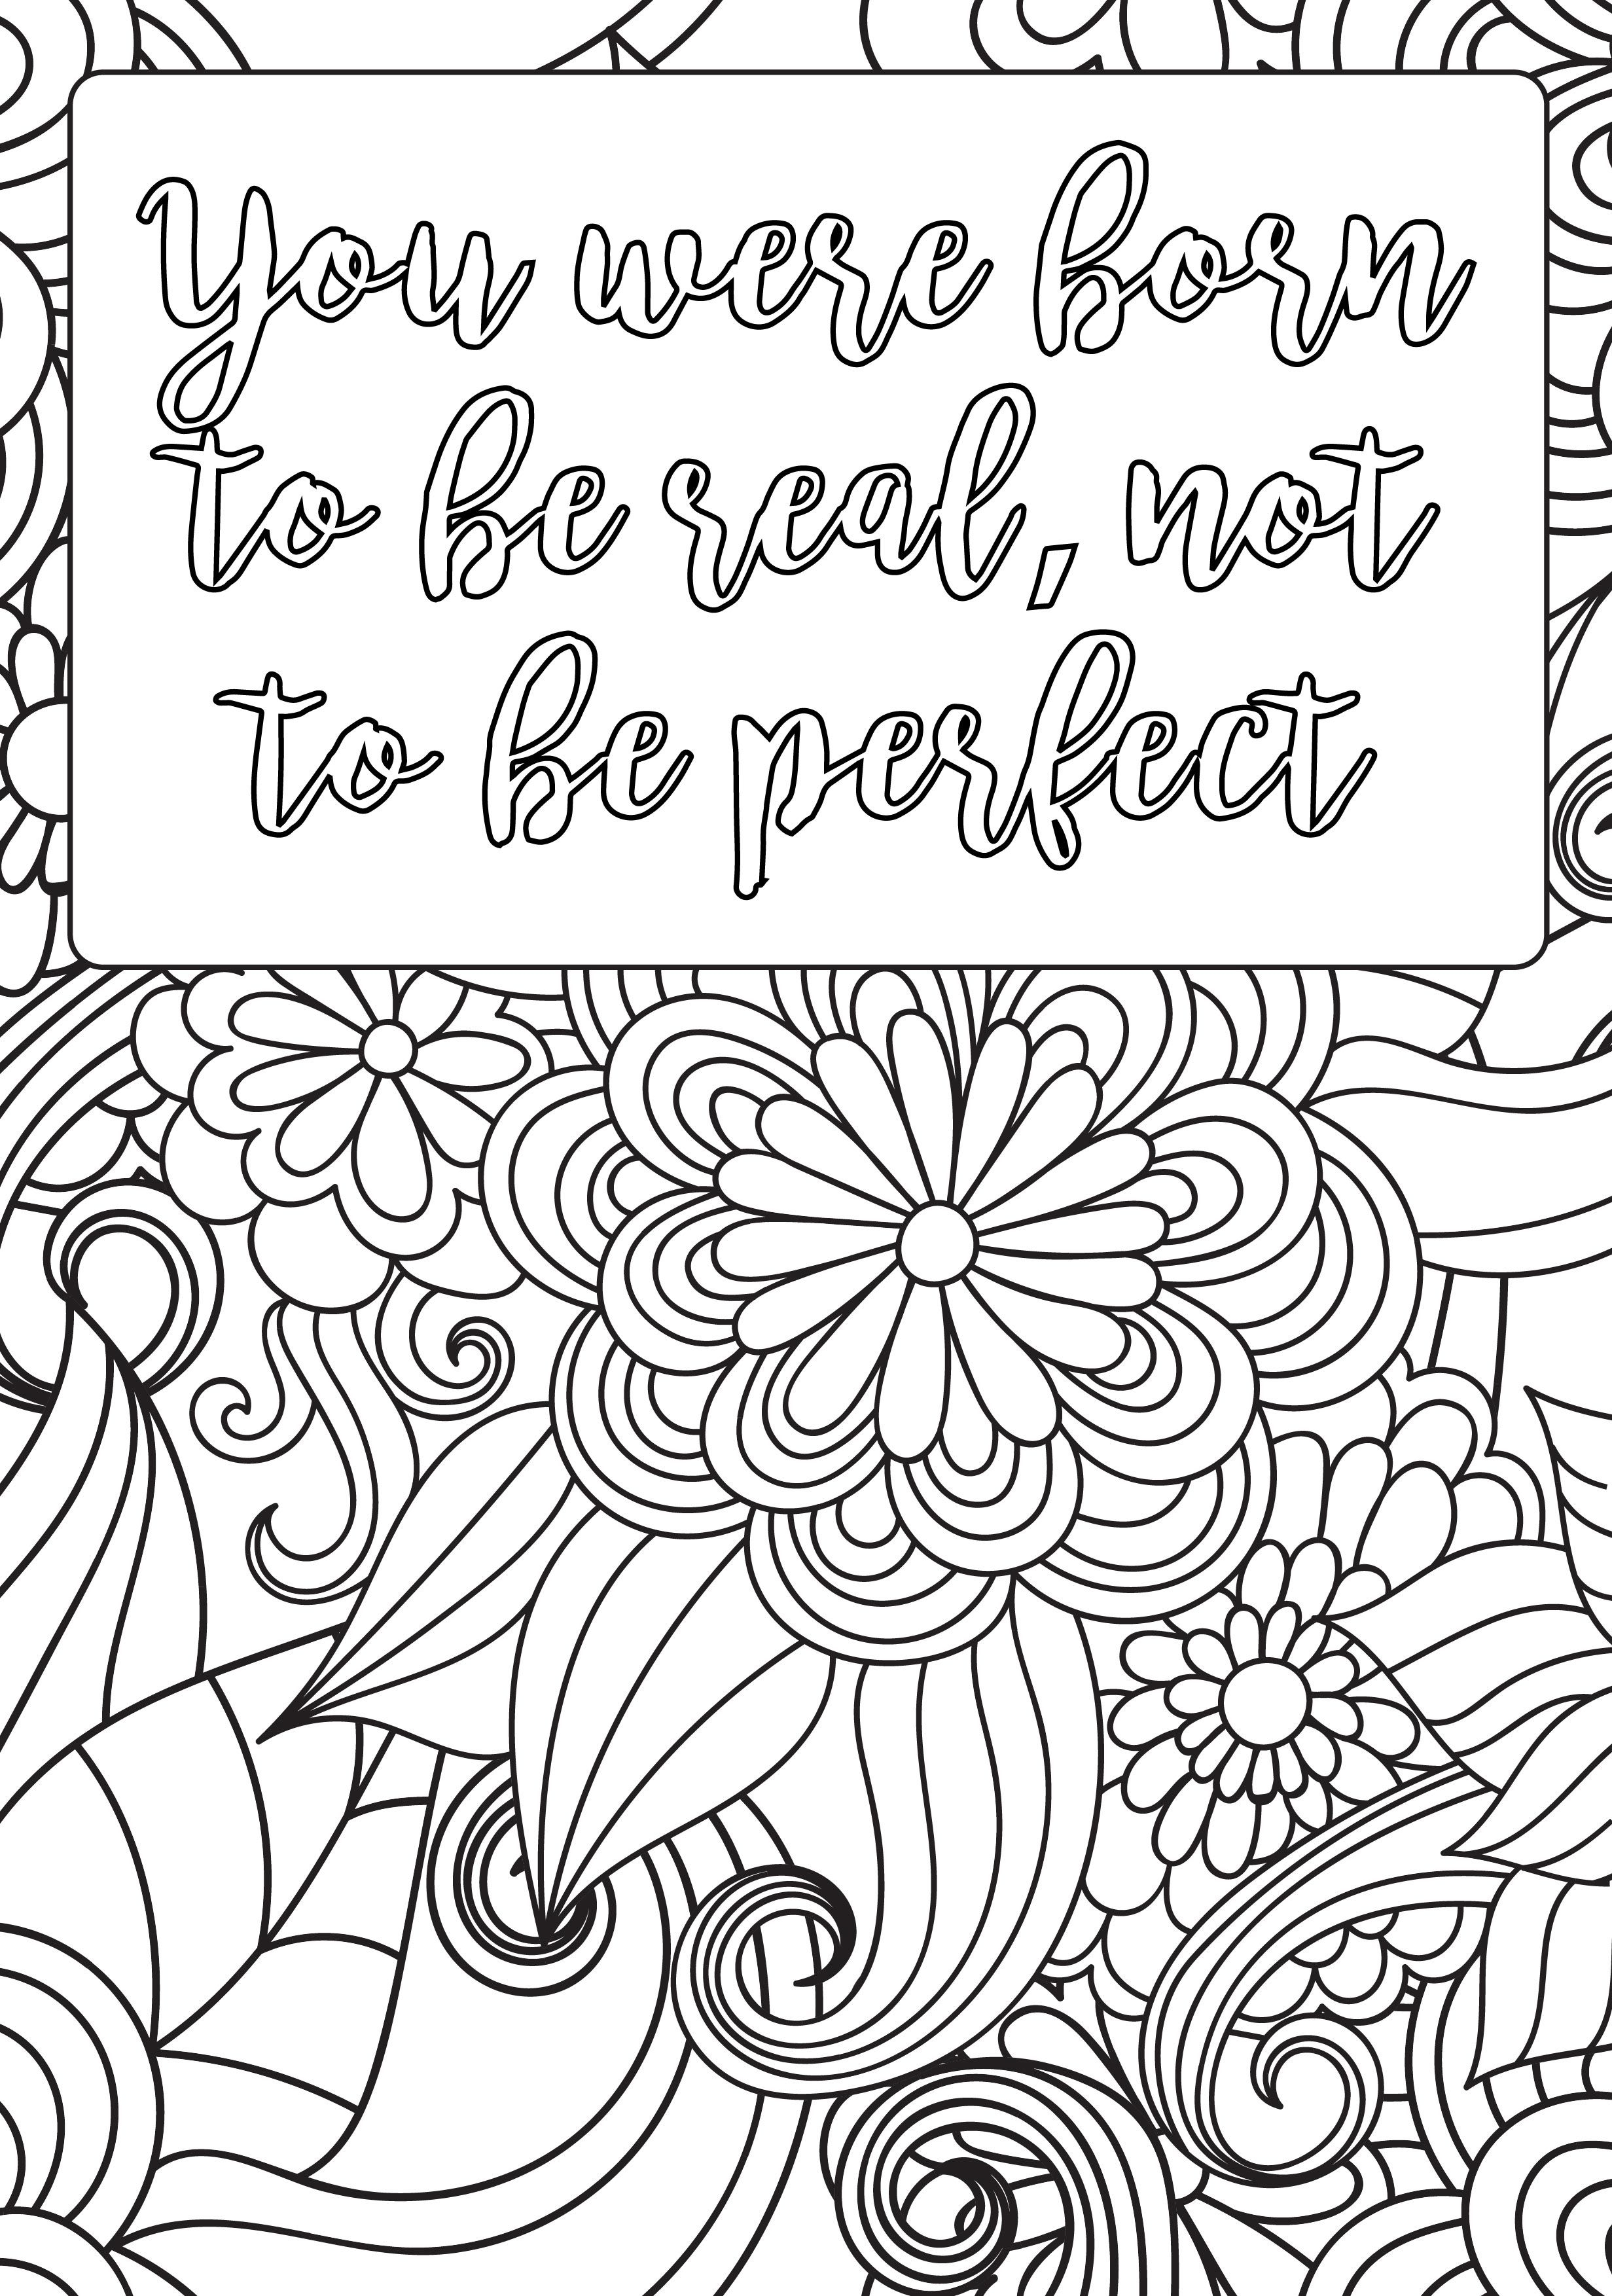 positive coloring pages - positive affirmation coloring pages